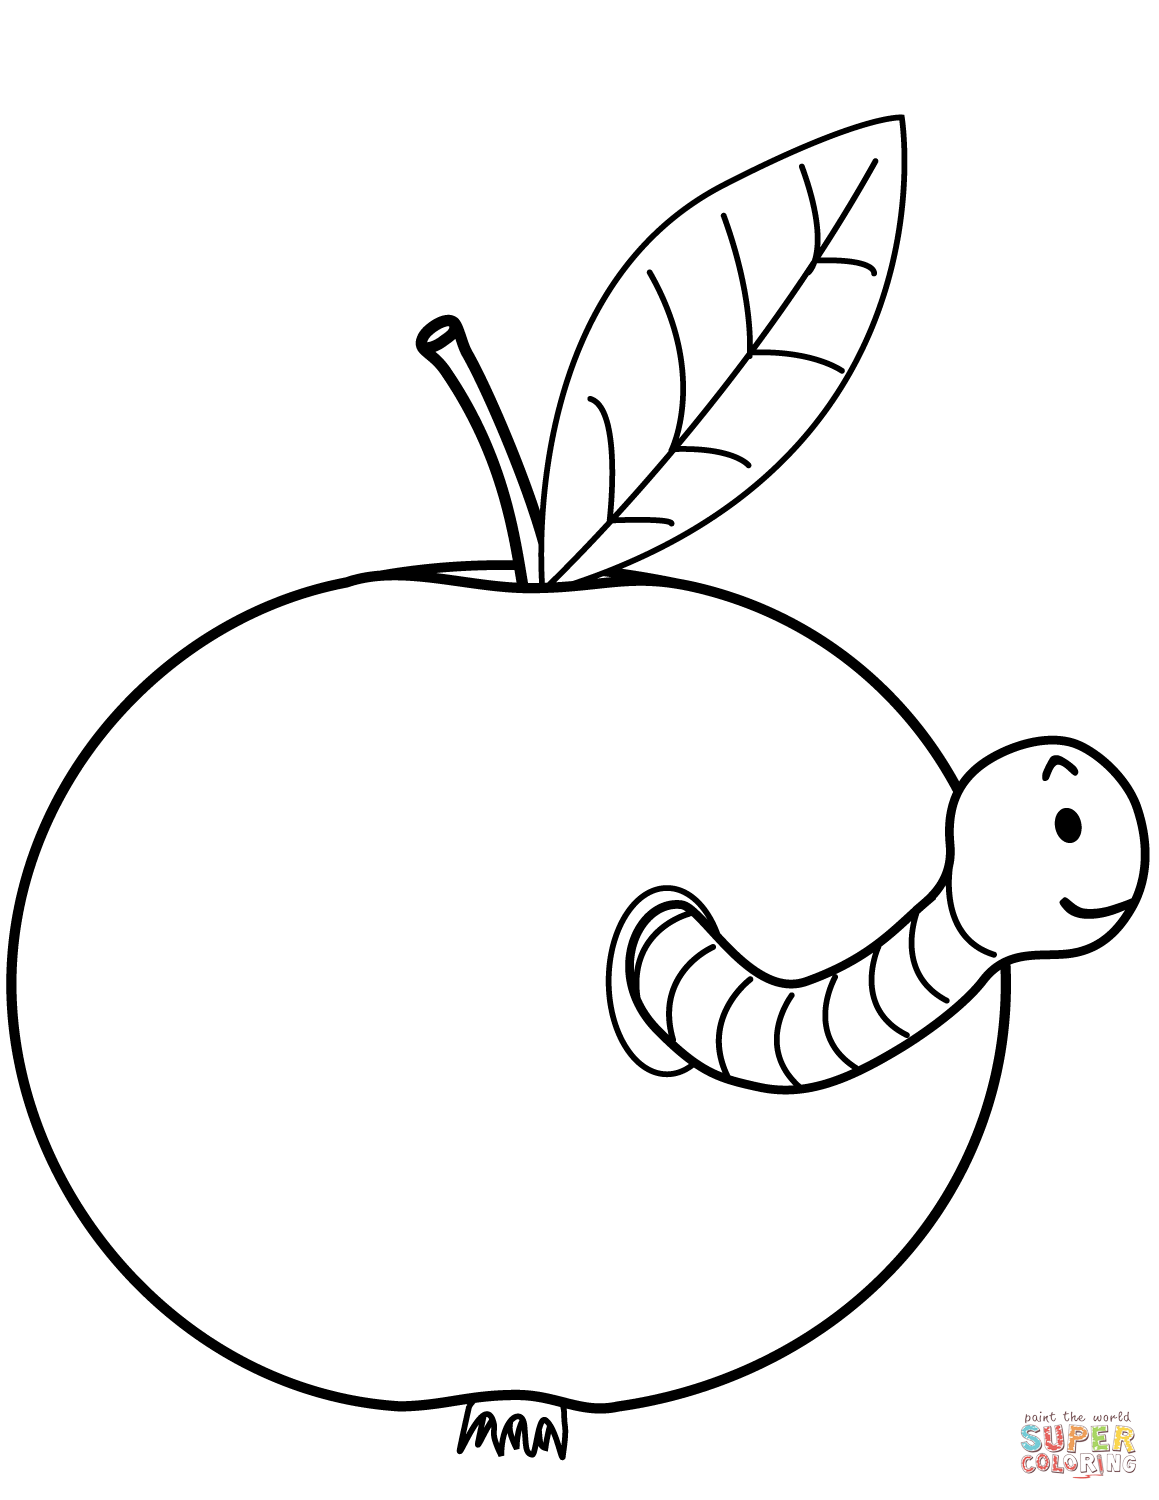 image relating to Printable Apple referred to as Line Drawing Of Apple at  Cost-free for person